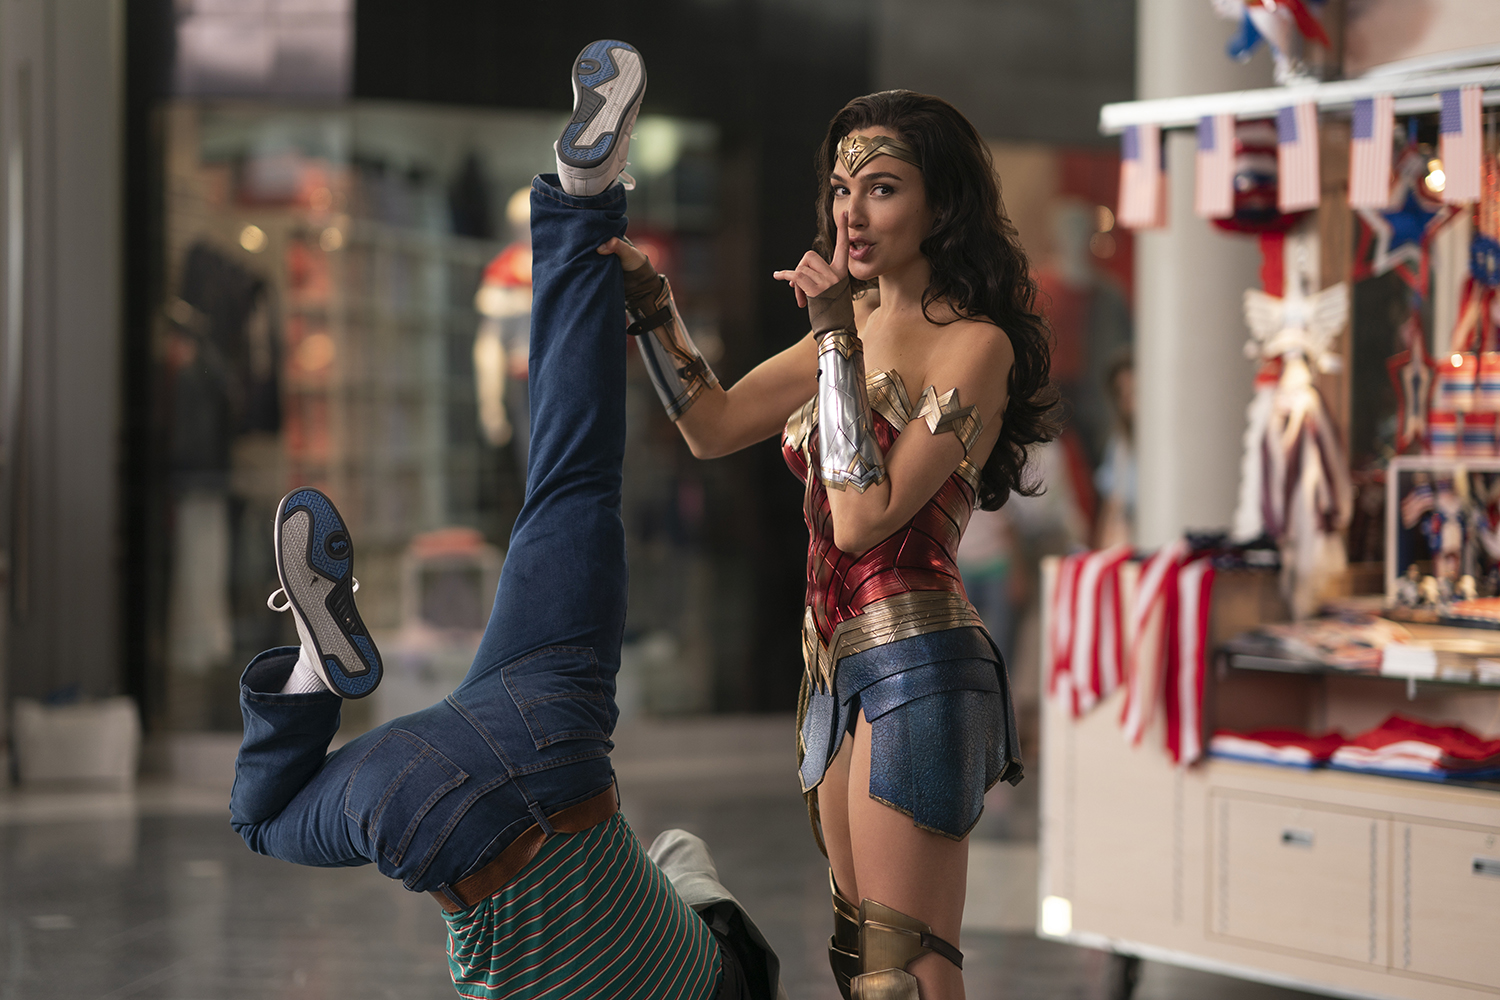 GAL GADOT as Wonder Woman (Image: Warner Bros. Pictures)